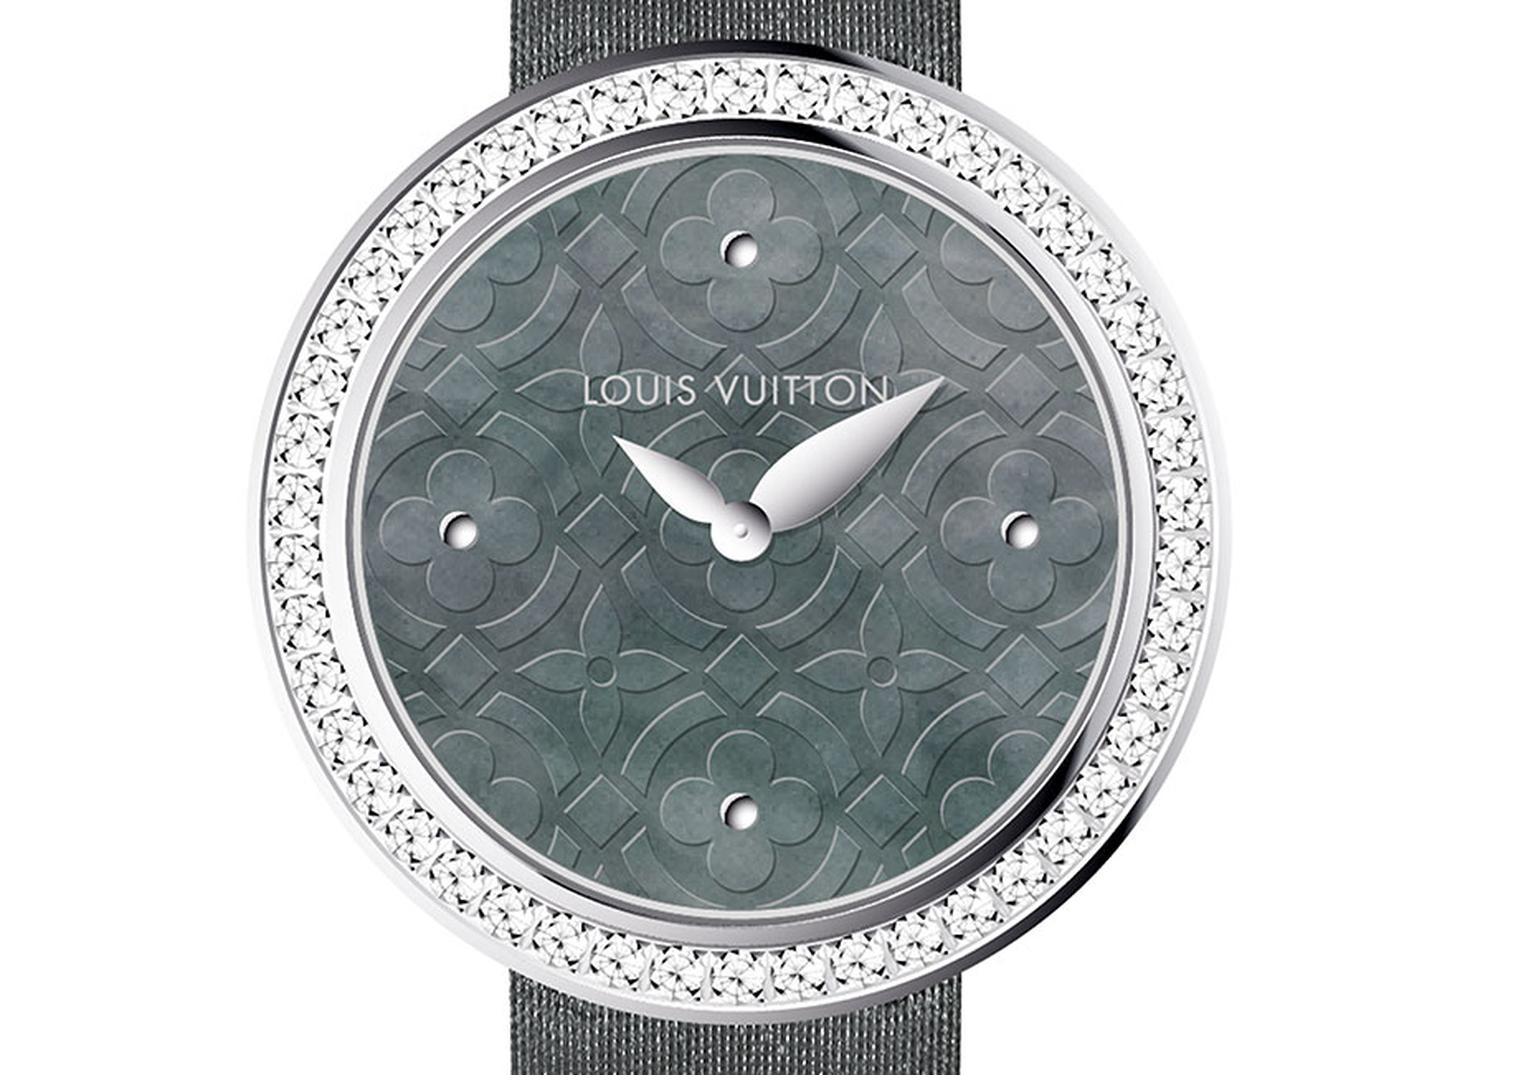 Louis Vuitton Dentelle de Monogram collection watch featuring a grey Polynesian mother-of-pearl dial surrounded by a diamond bezel and a grey satin strap.